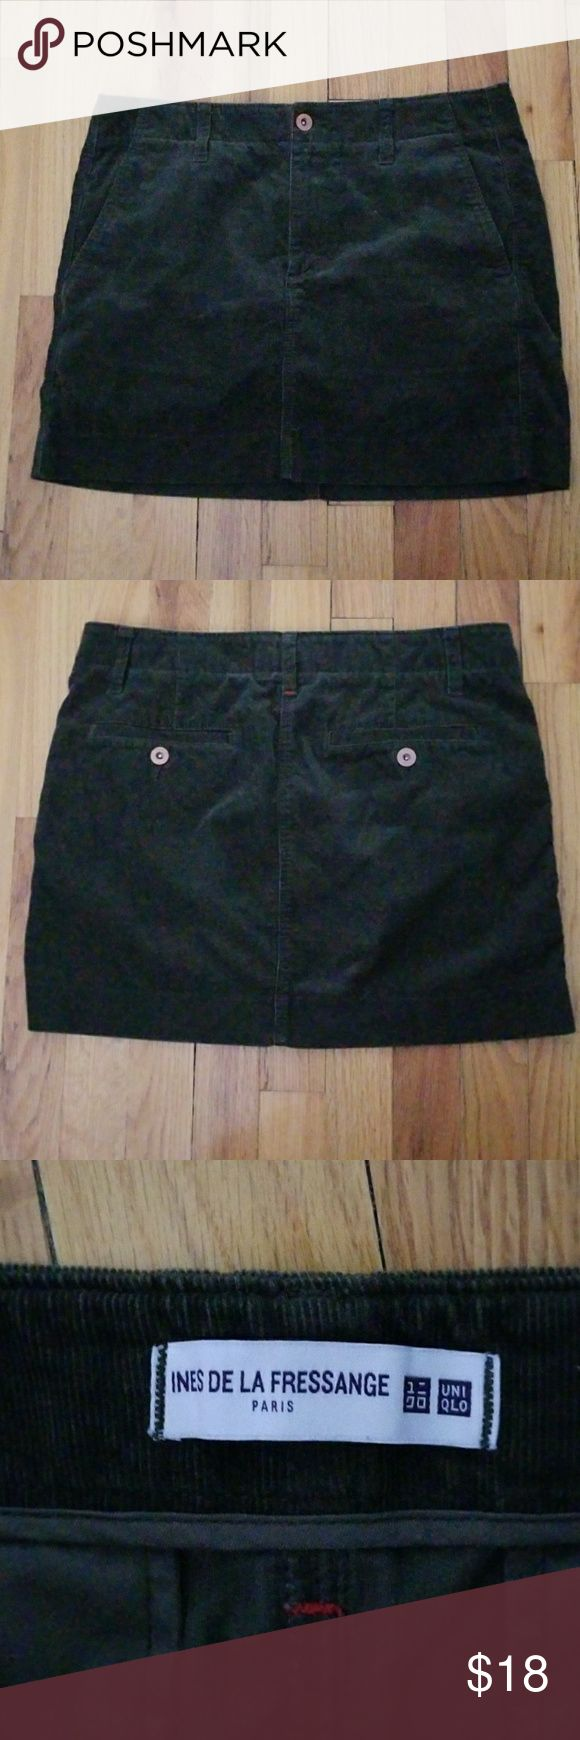 "Uniqlo Mini Skirt Uniqlo mini skirt. Size 4. Brown. Pre-owned, great condition. 2 front side pockets. 2 buttoned back pockets. Belt loops. These are from the '2017 Ines De La Fressange collection'. 100% cotton. Soft. All buttons say Uniqlo. 15"" waist laying flat. 14"" length. Last pic is true color.   See listing for same skirt in black.  No offers. Final price. Uniqlo Skirts Mini"